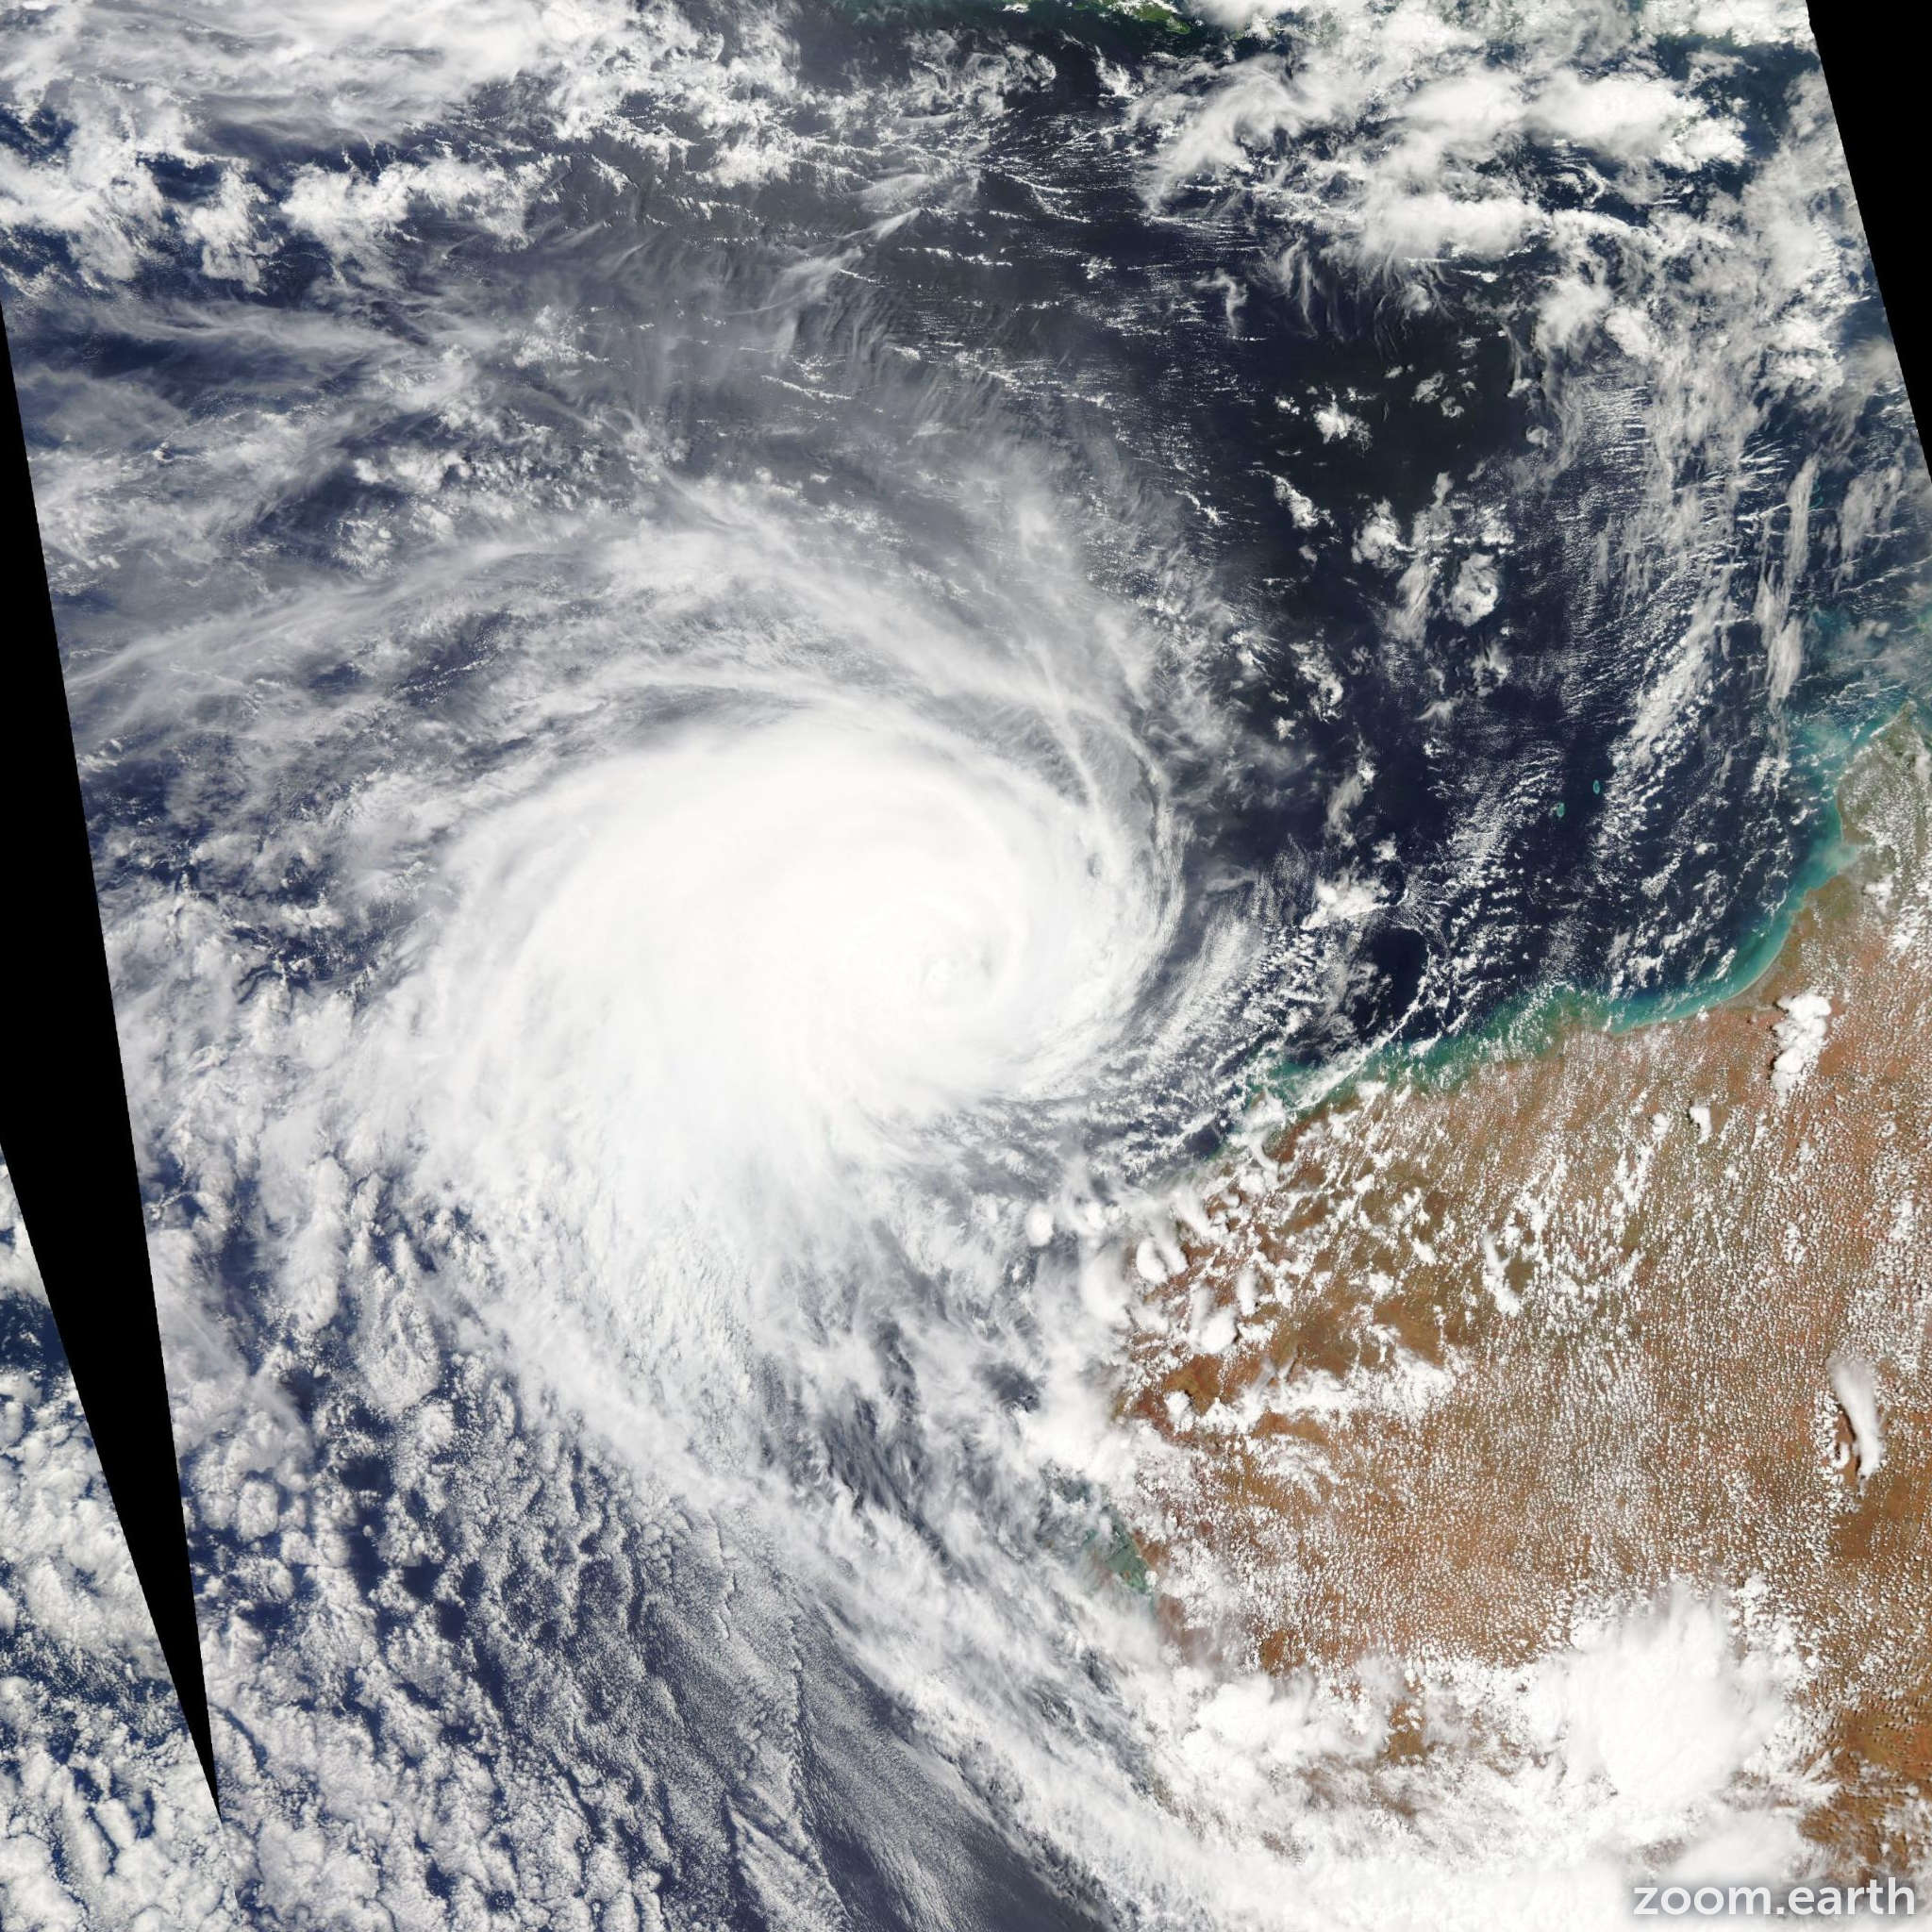 Satellite image of Cyclone Narelle 2013